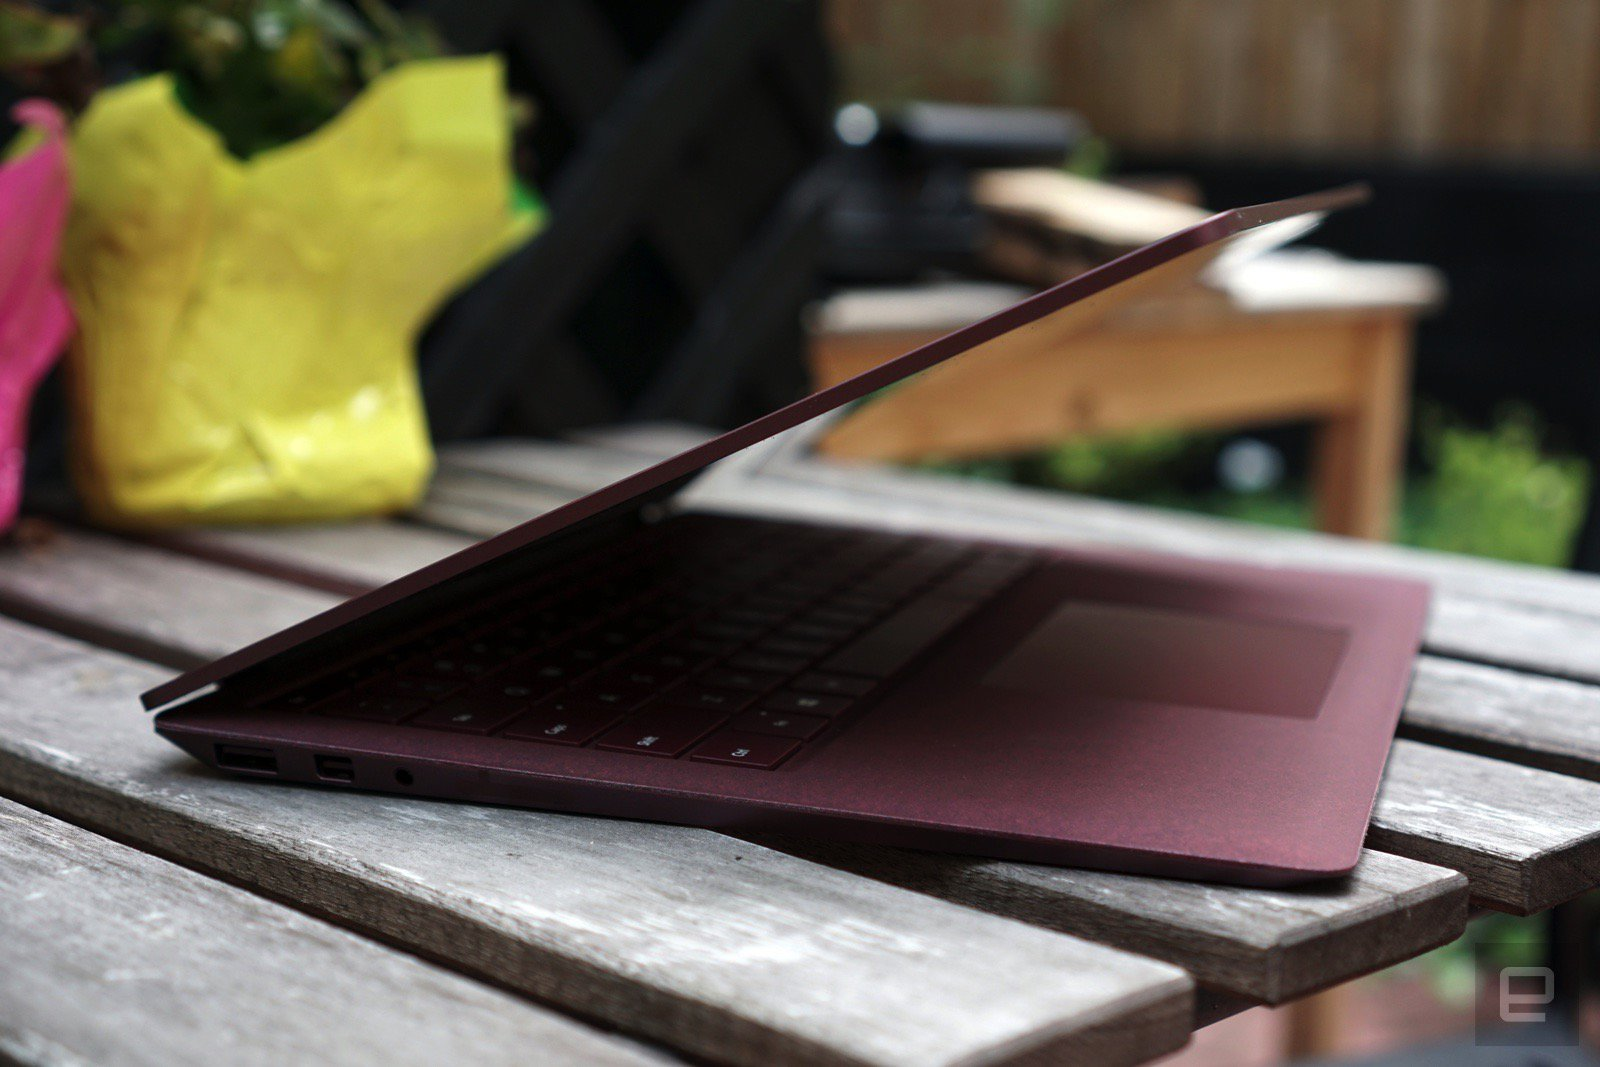 Surface+Laptop+review+gallery+5.jpg